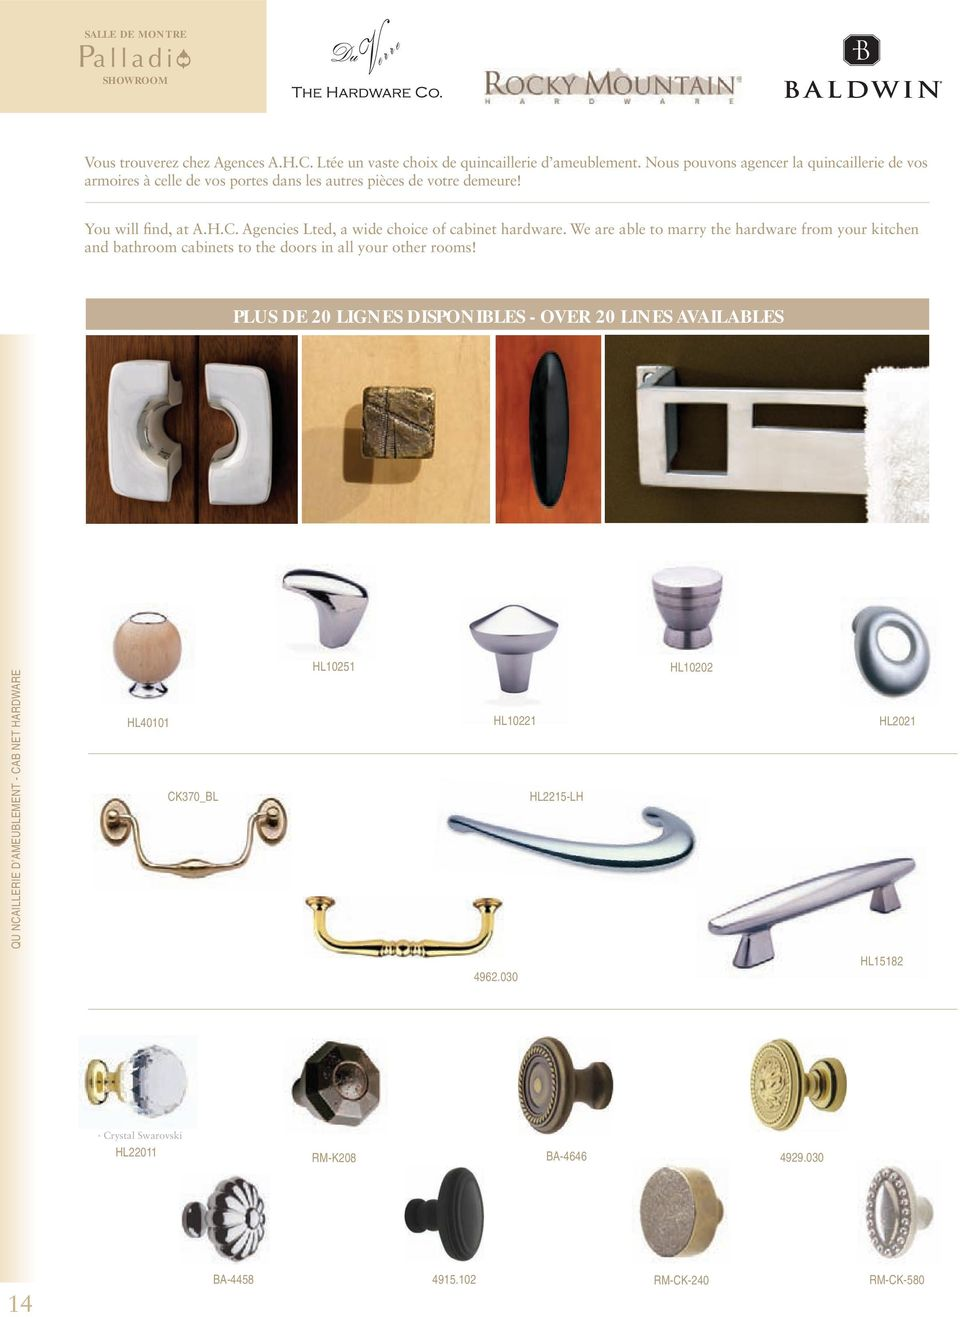 Agencies Lted, a wide choice of cabinet hardware. We are able to marry the hardware from your kitchen and bathroom cabinets to the doors in all your other rooms!